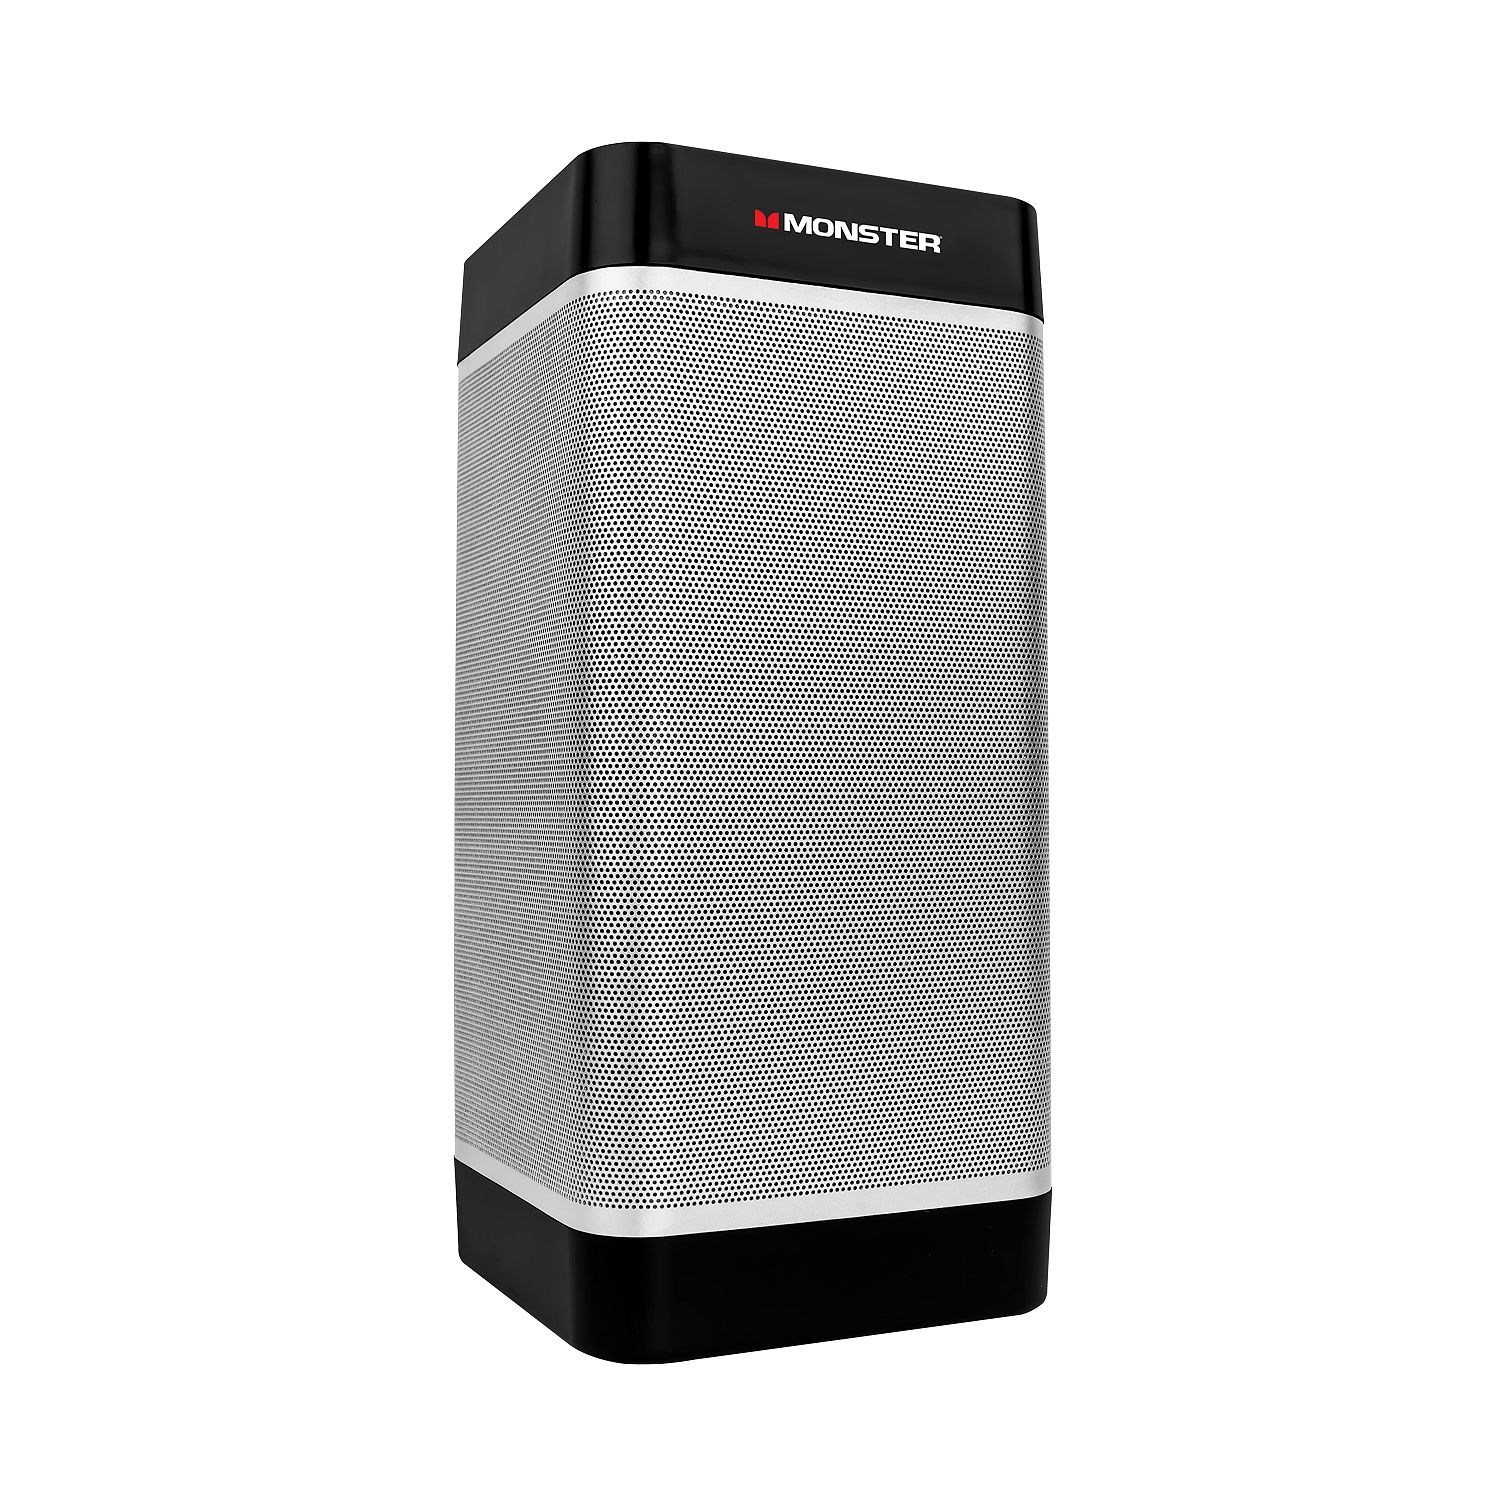 Monster Tower of Music Portable Speaker with 3-Way Speakers, Silver (New )